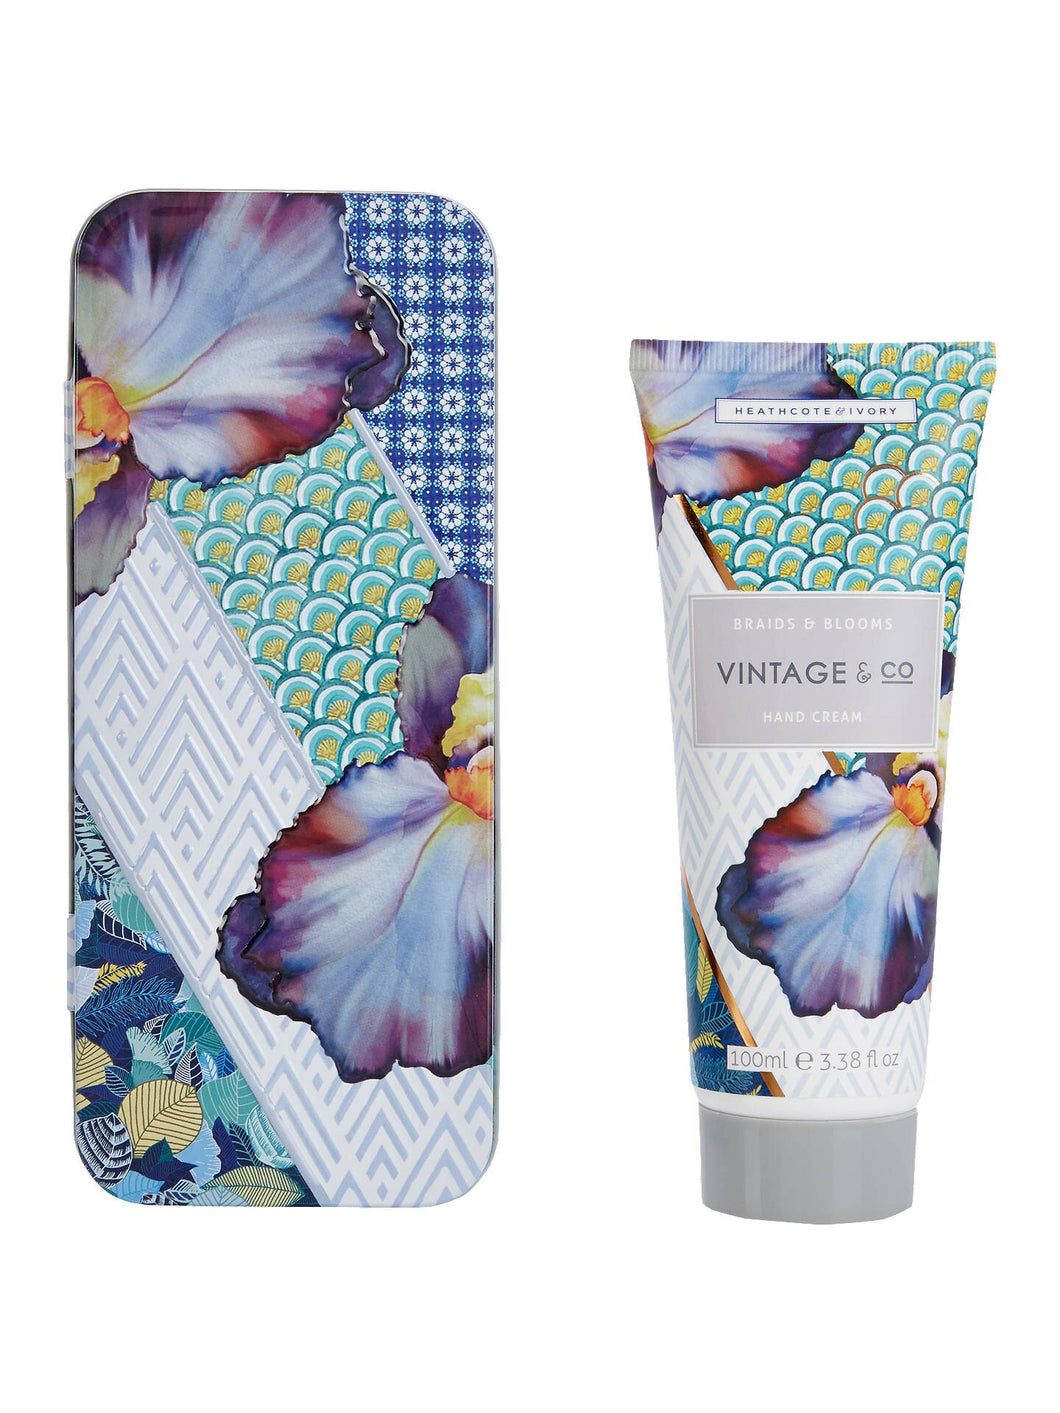 Vintage & Co. 'Braids & Blooms' - Hand Cream in Tin - Derbyshire Gift Centre